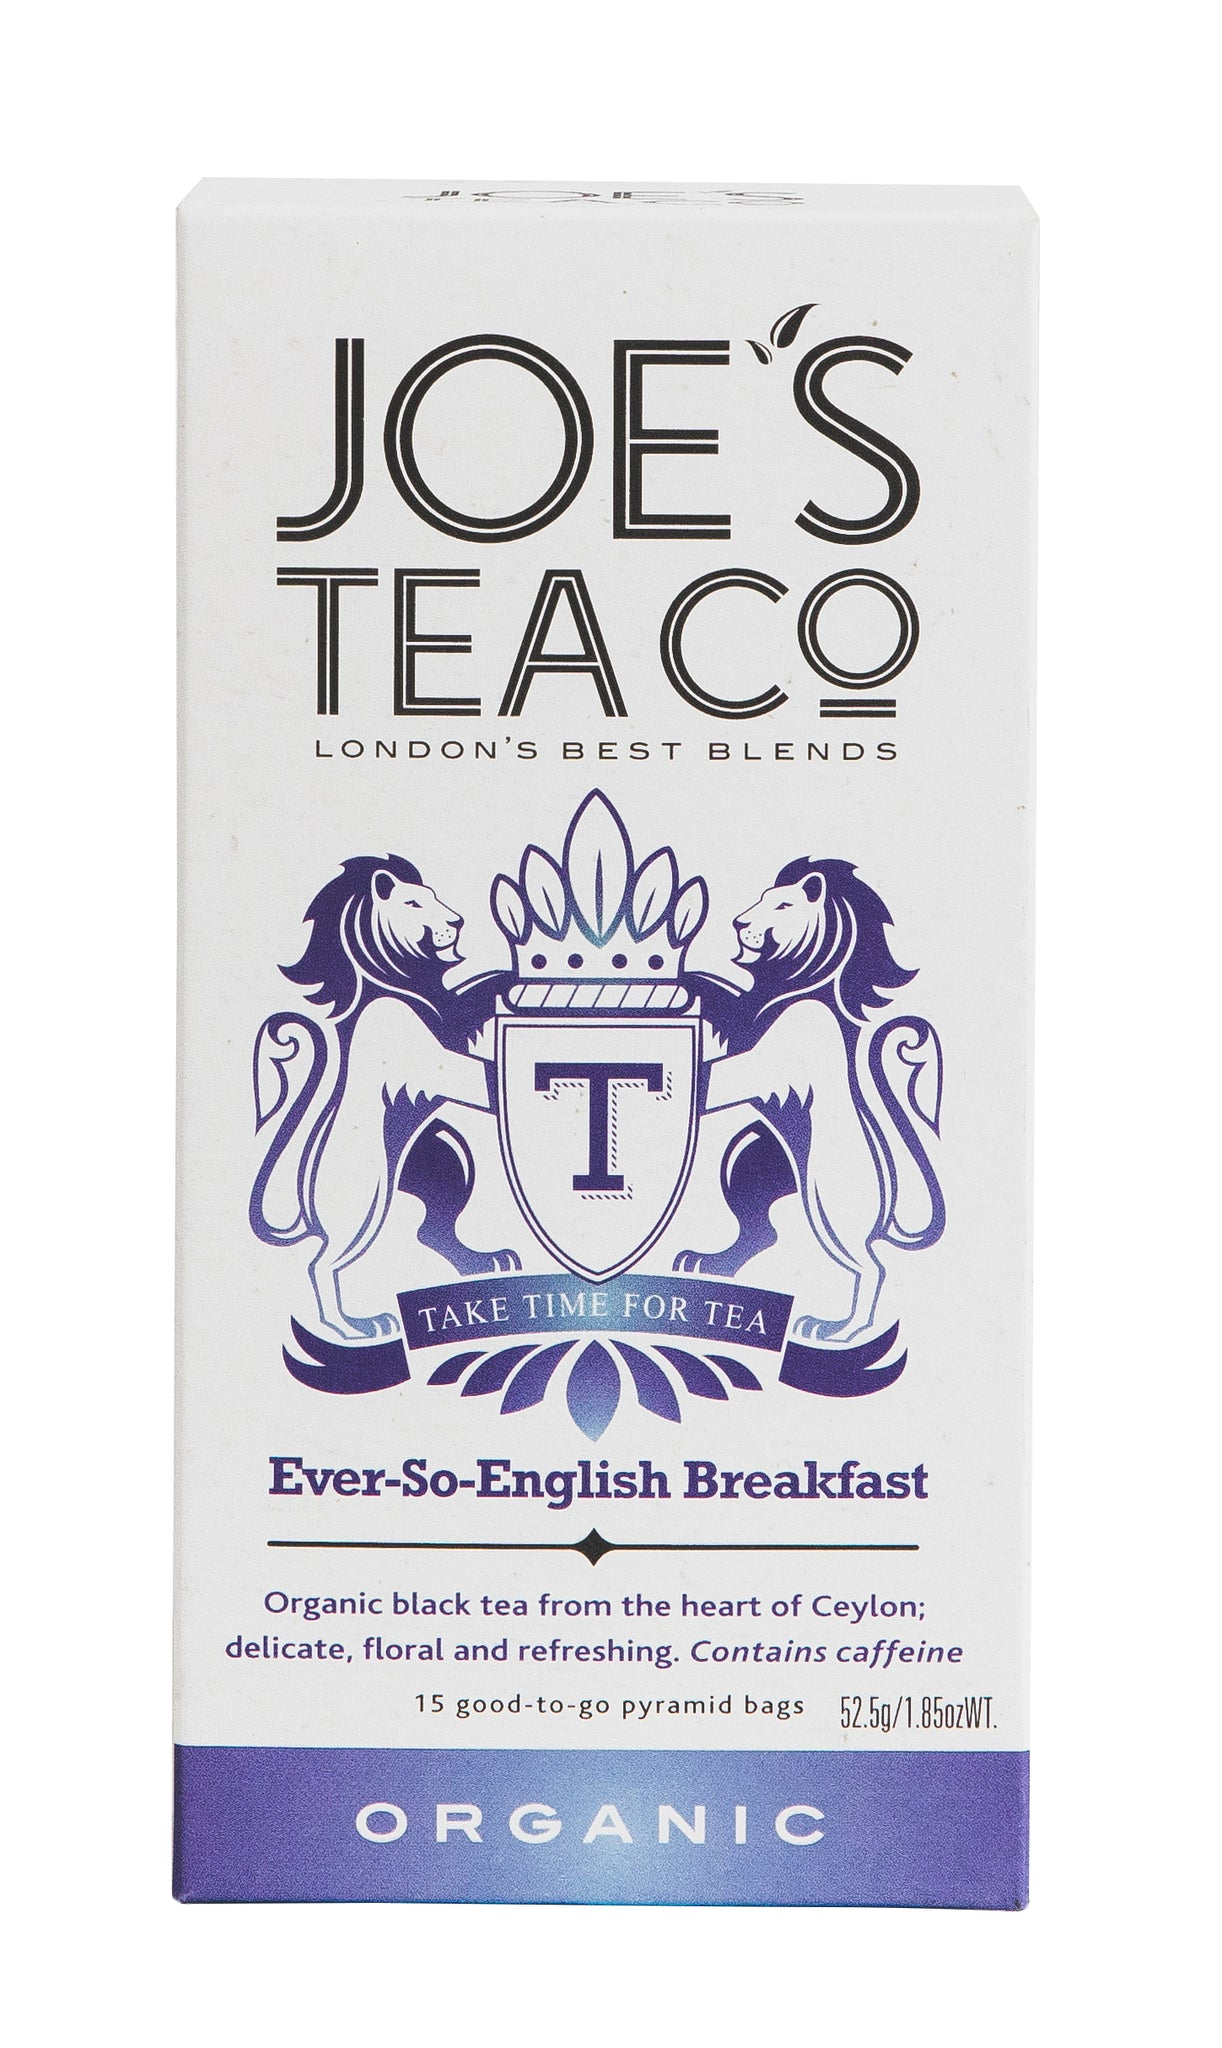 Joe's Tea Co. Ever-So-English Breakfast tea bags